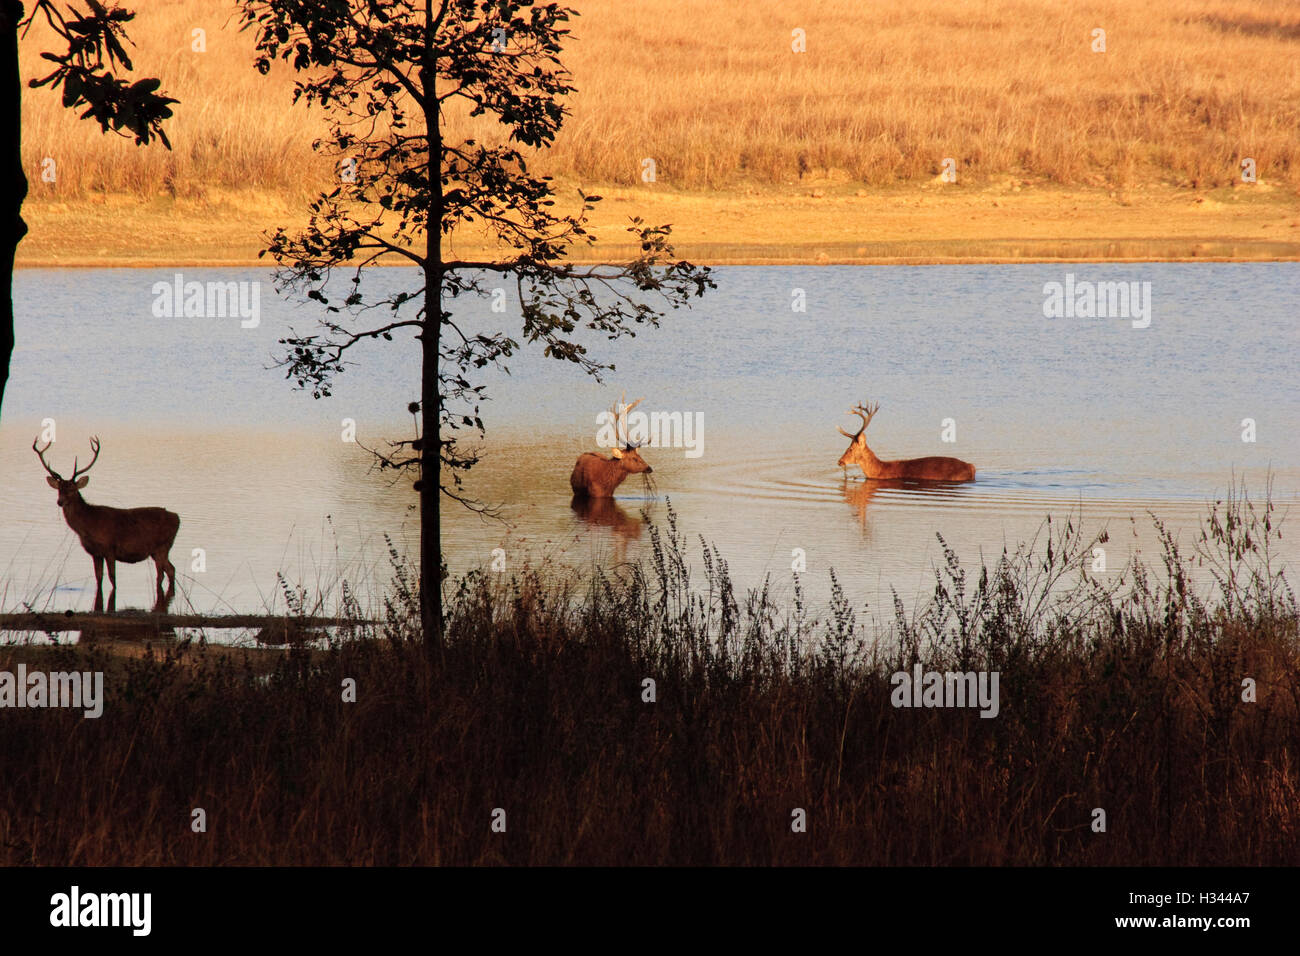 Indian Sambar Deer grazing in water hole in Bandhavbahr National Park of India.  These deer forage in lake water - Stock Image